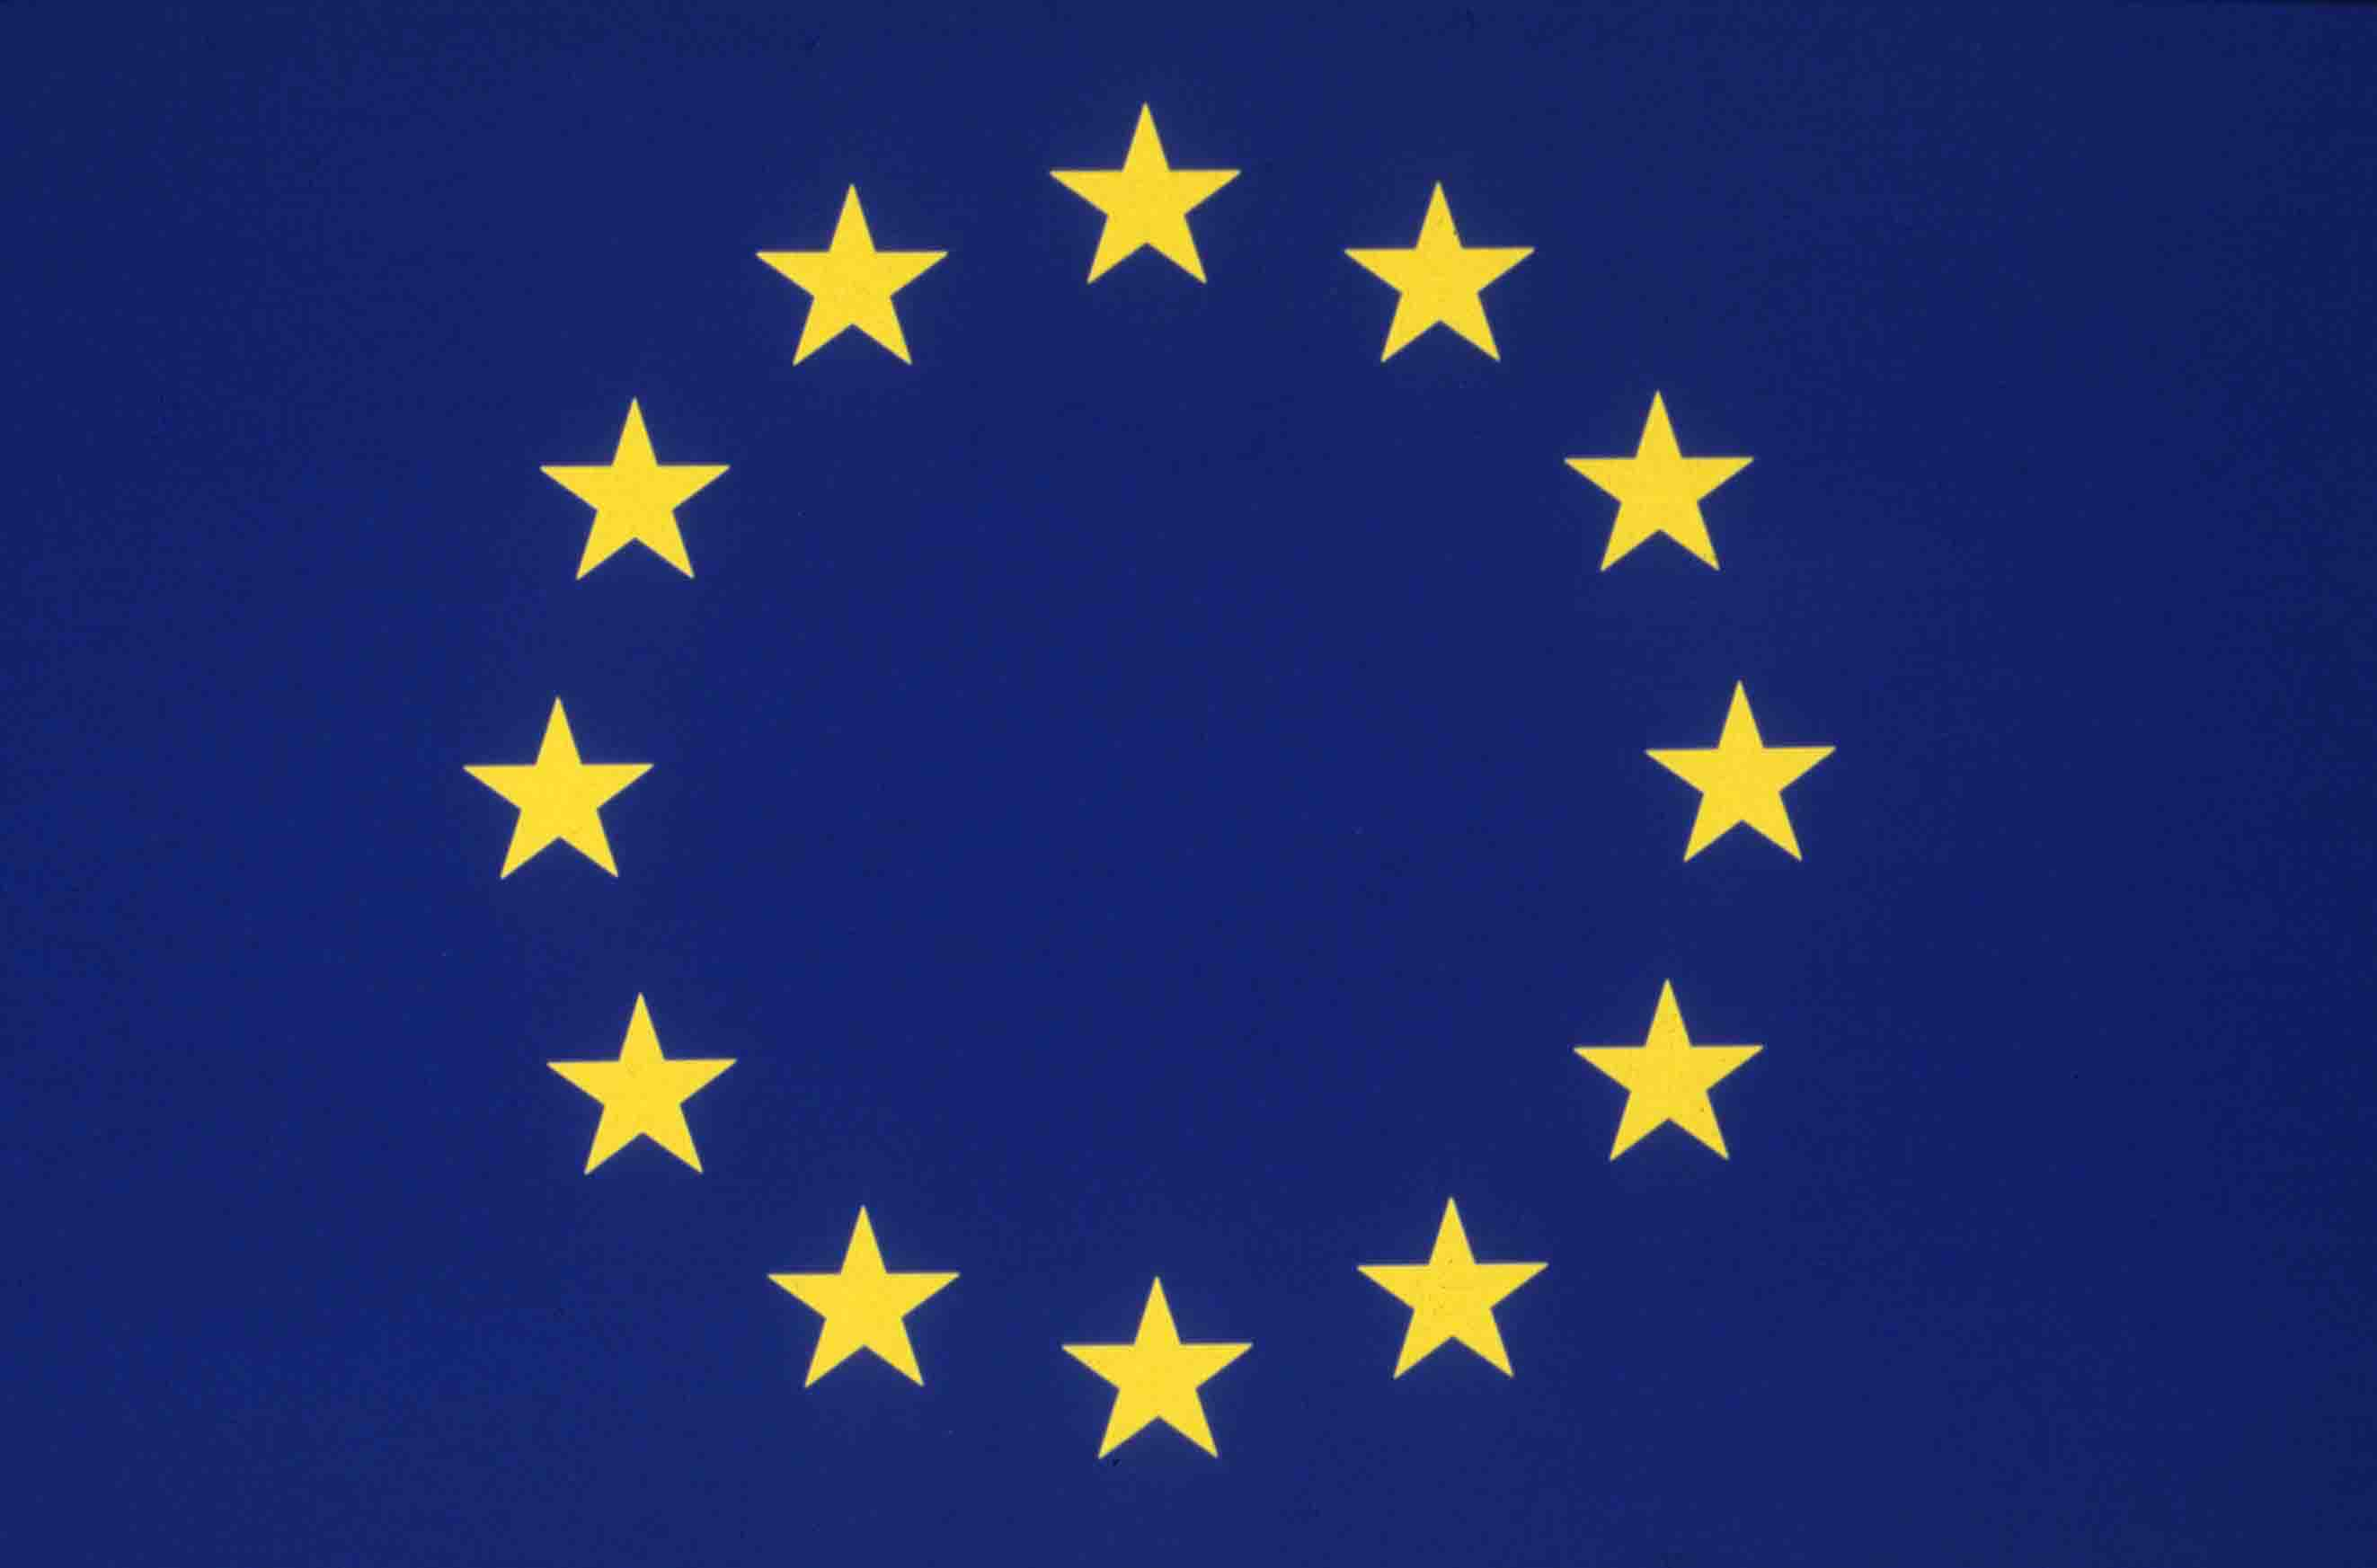 Statement of the Campaign Against the European Constitution